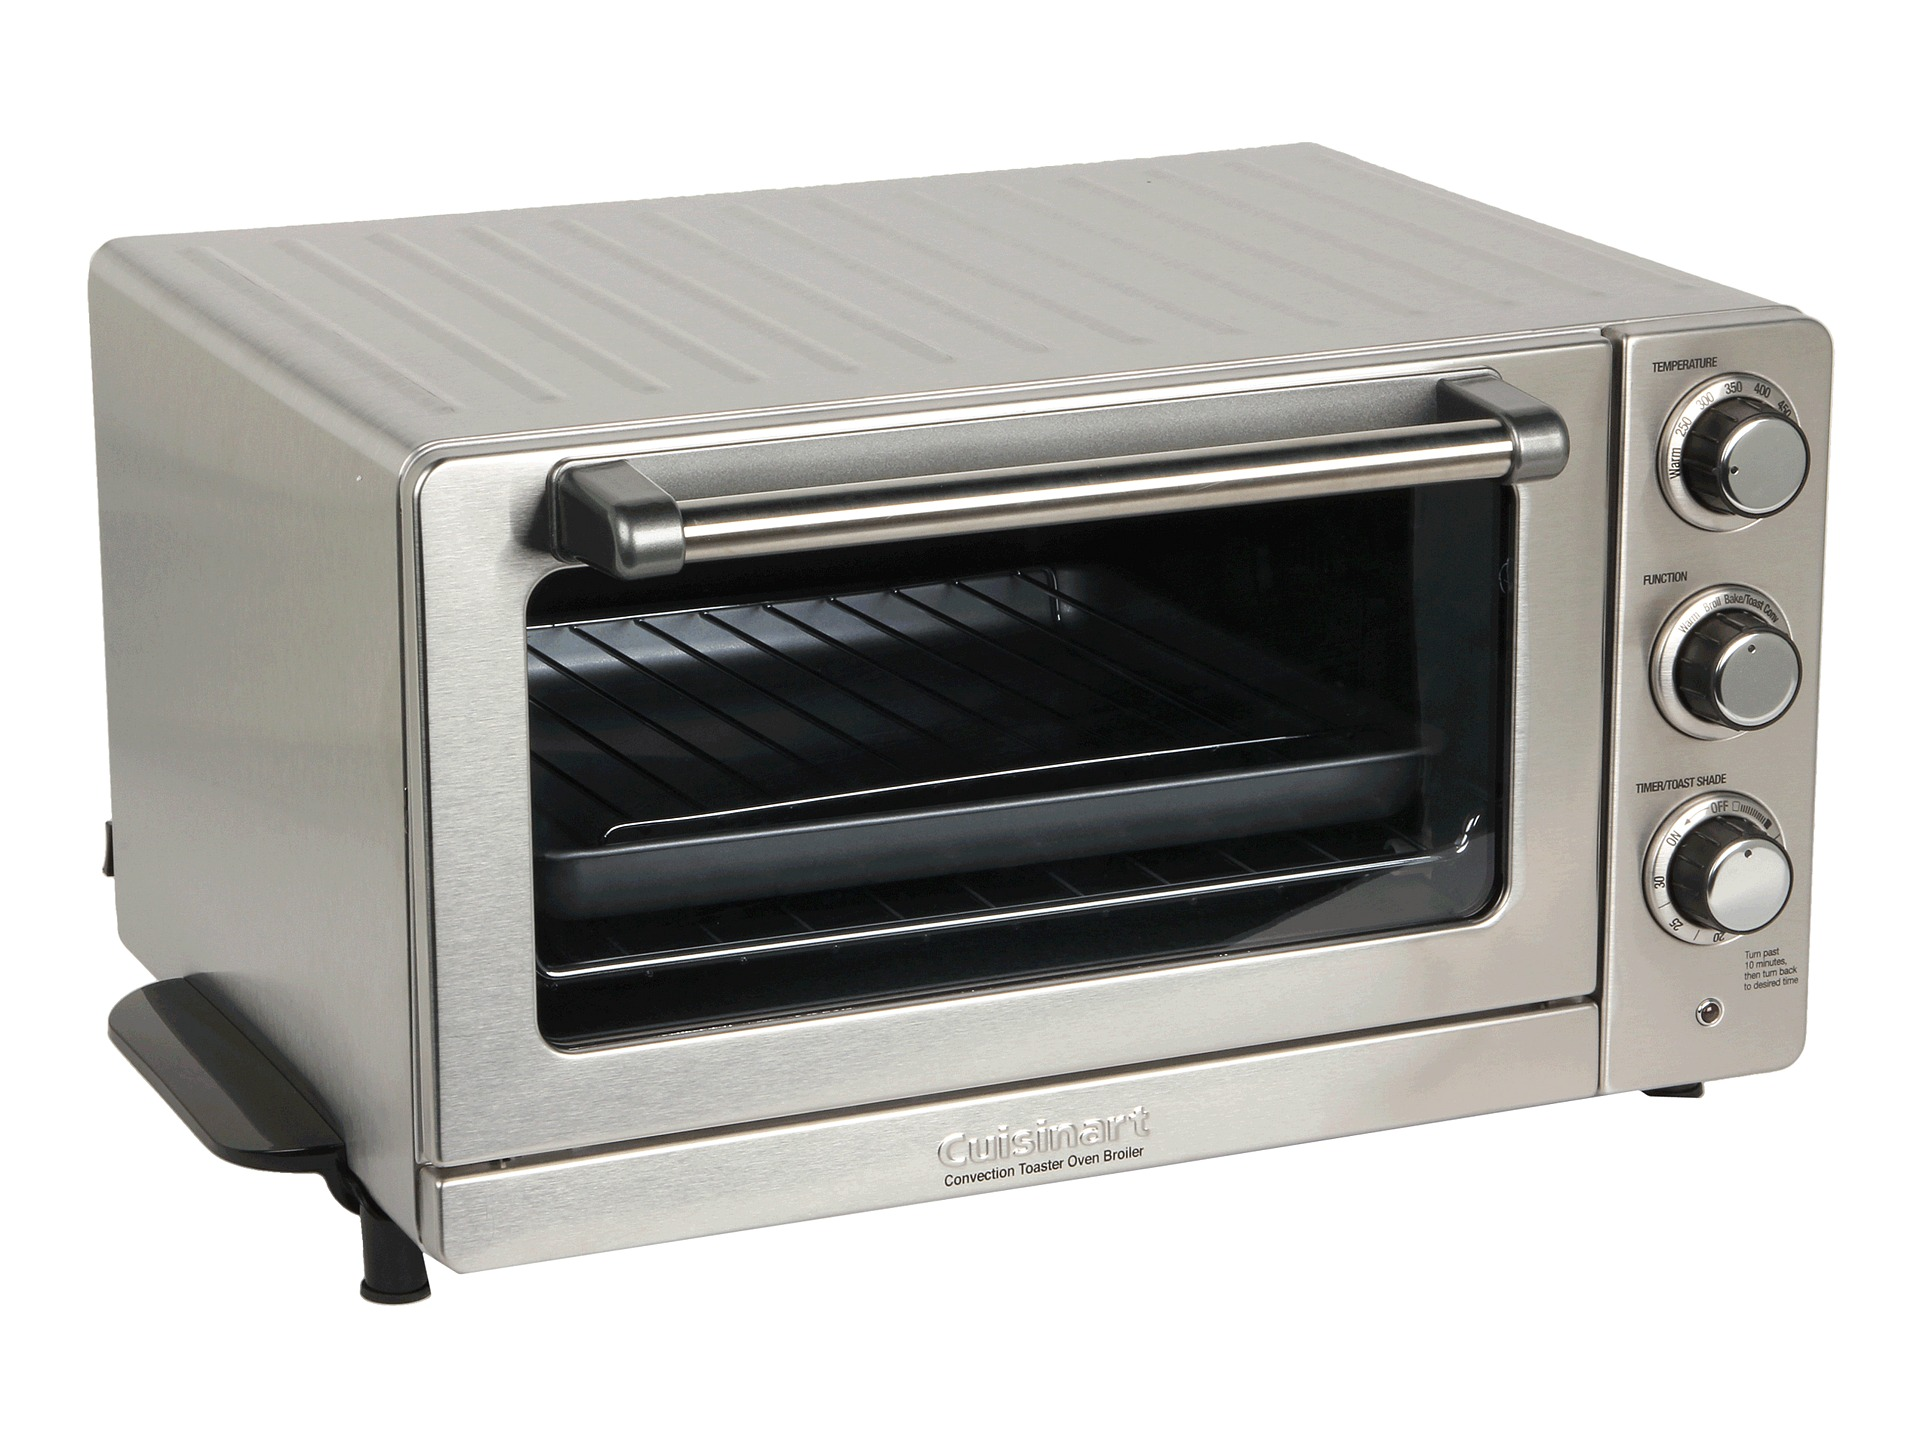 Cuisinart Toaster Oven Tob 155 Manual